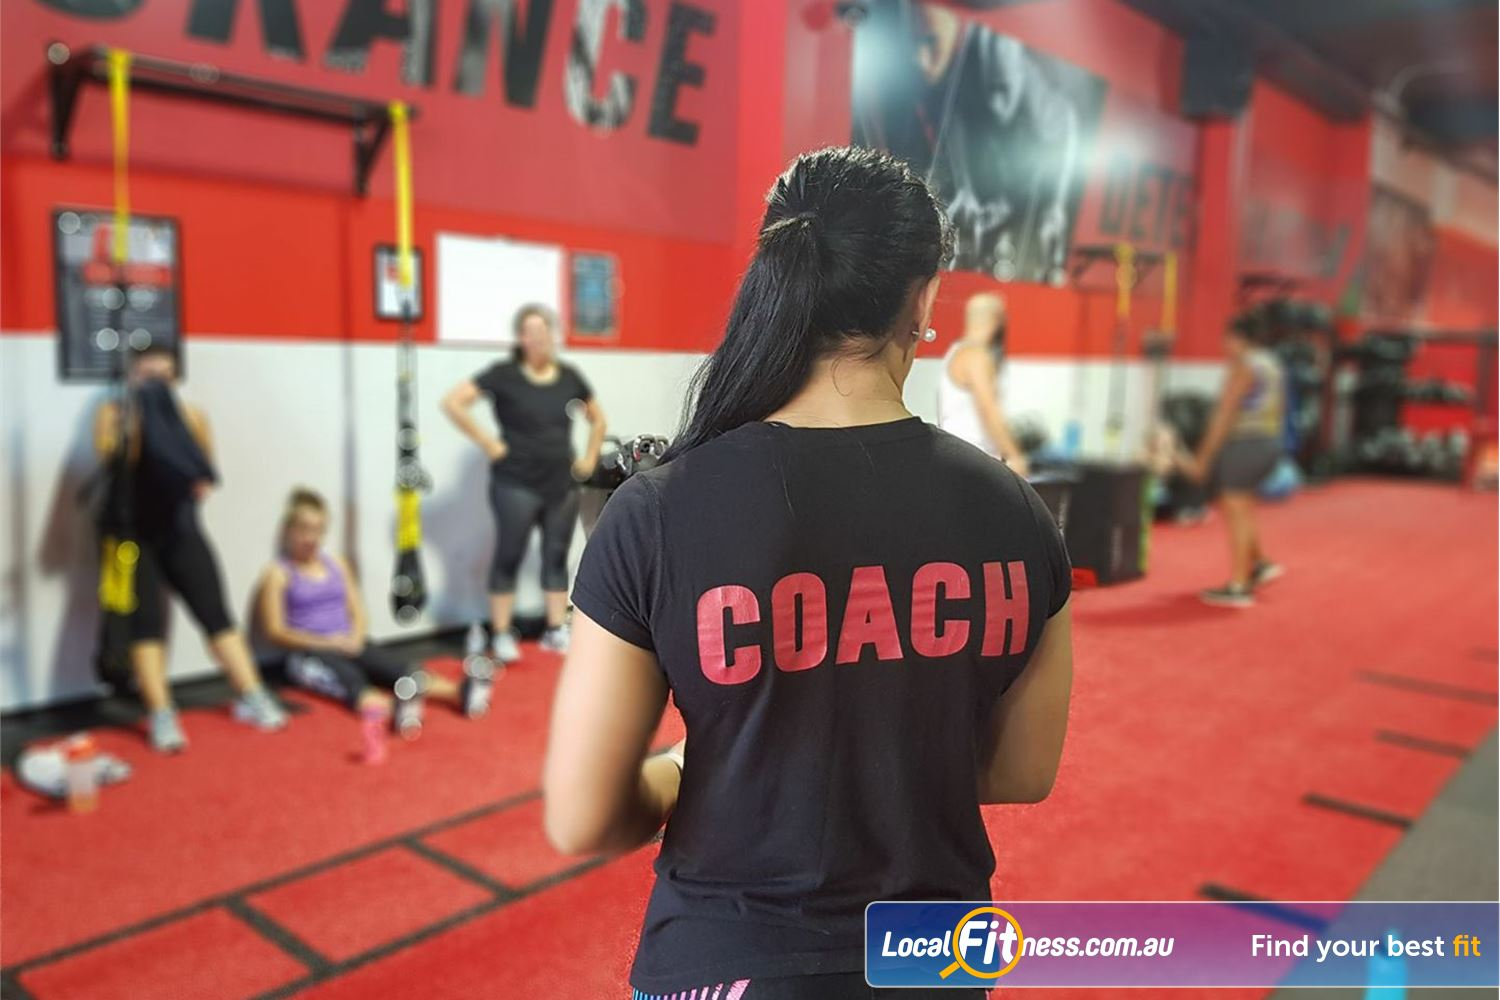 UFC Gym Near Doonside Our coaches will take you through a functional and HIIT workout.